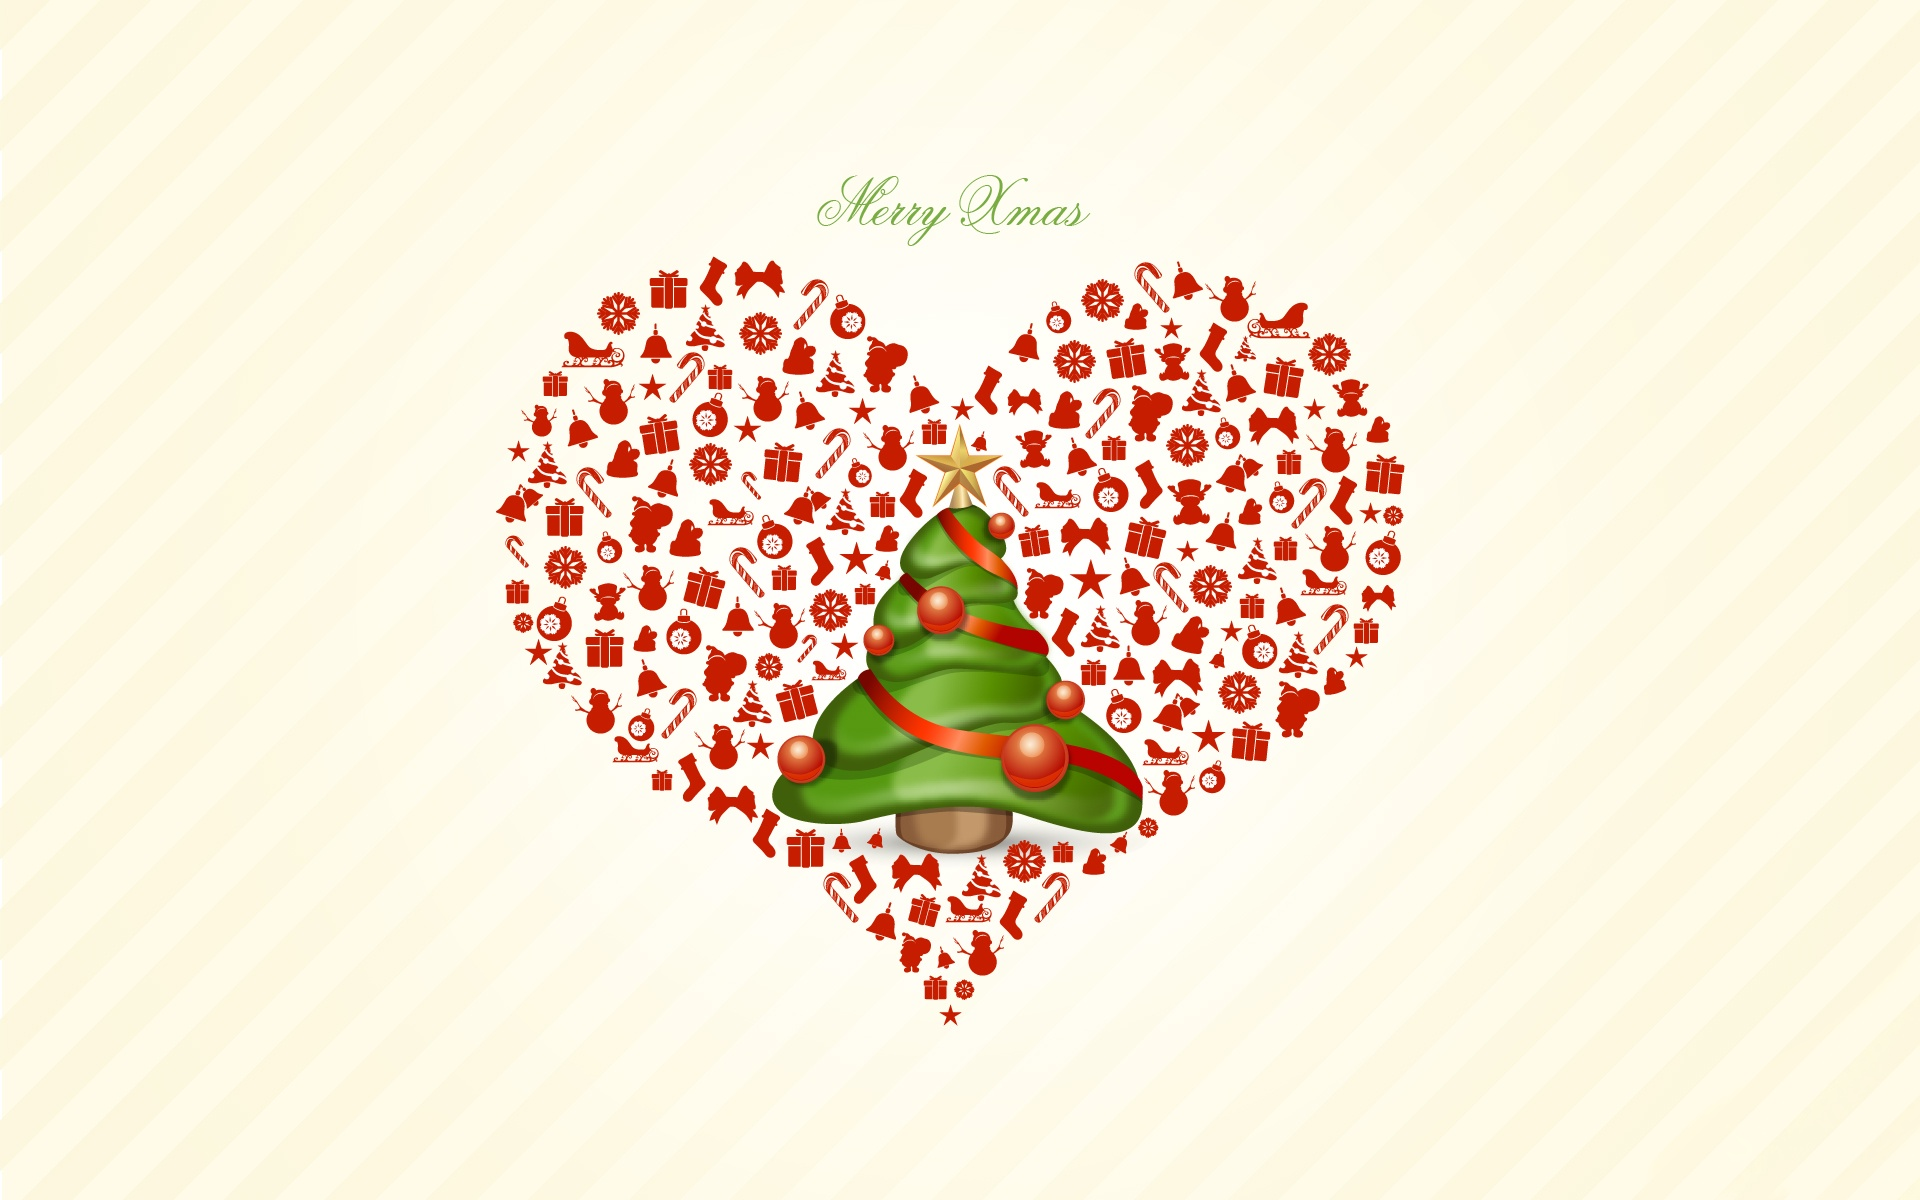 Xmas Love Wallpapers : Merry christmas Heart Love wallpaper 1920x1200 #26534